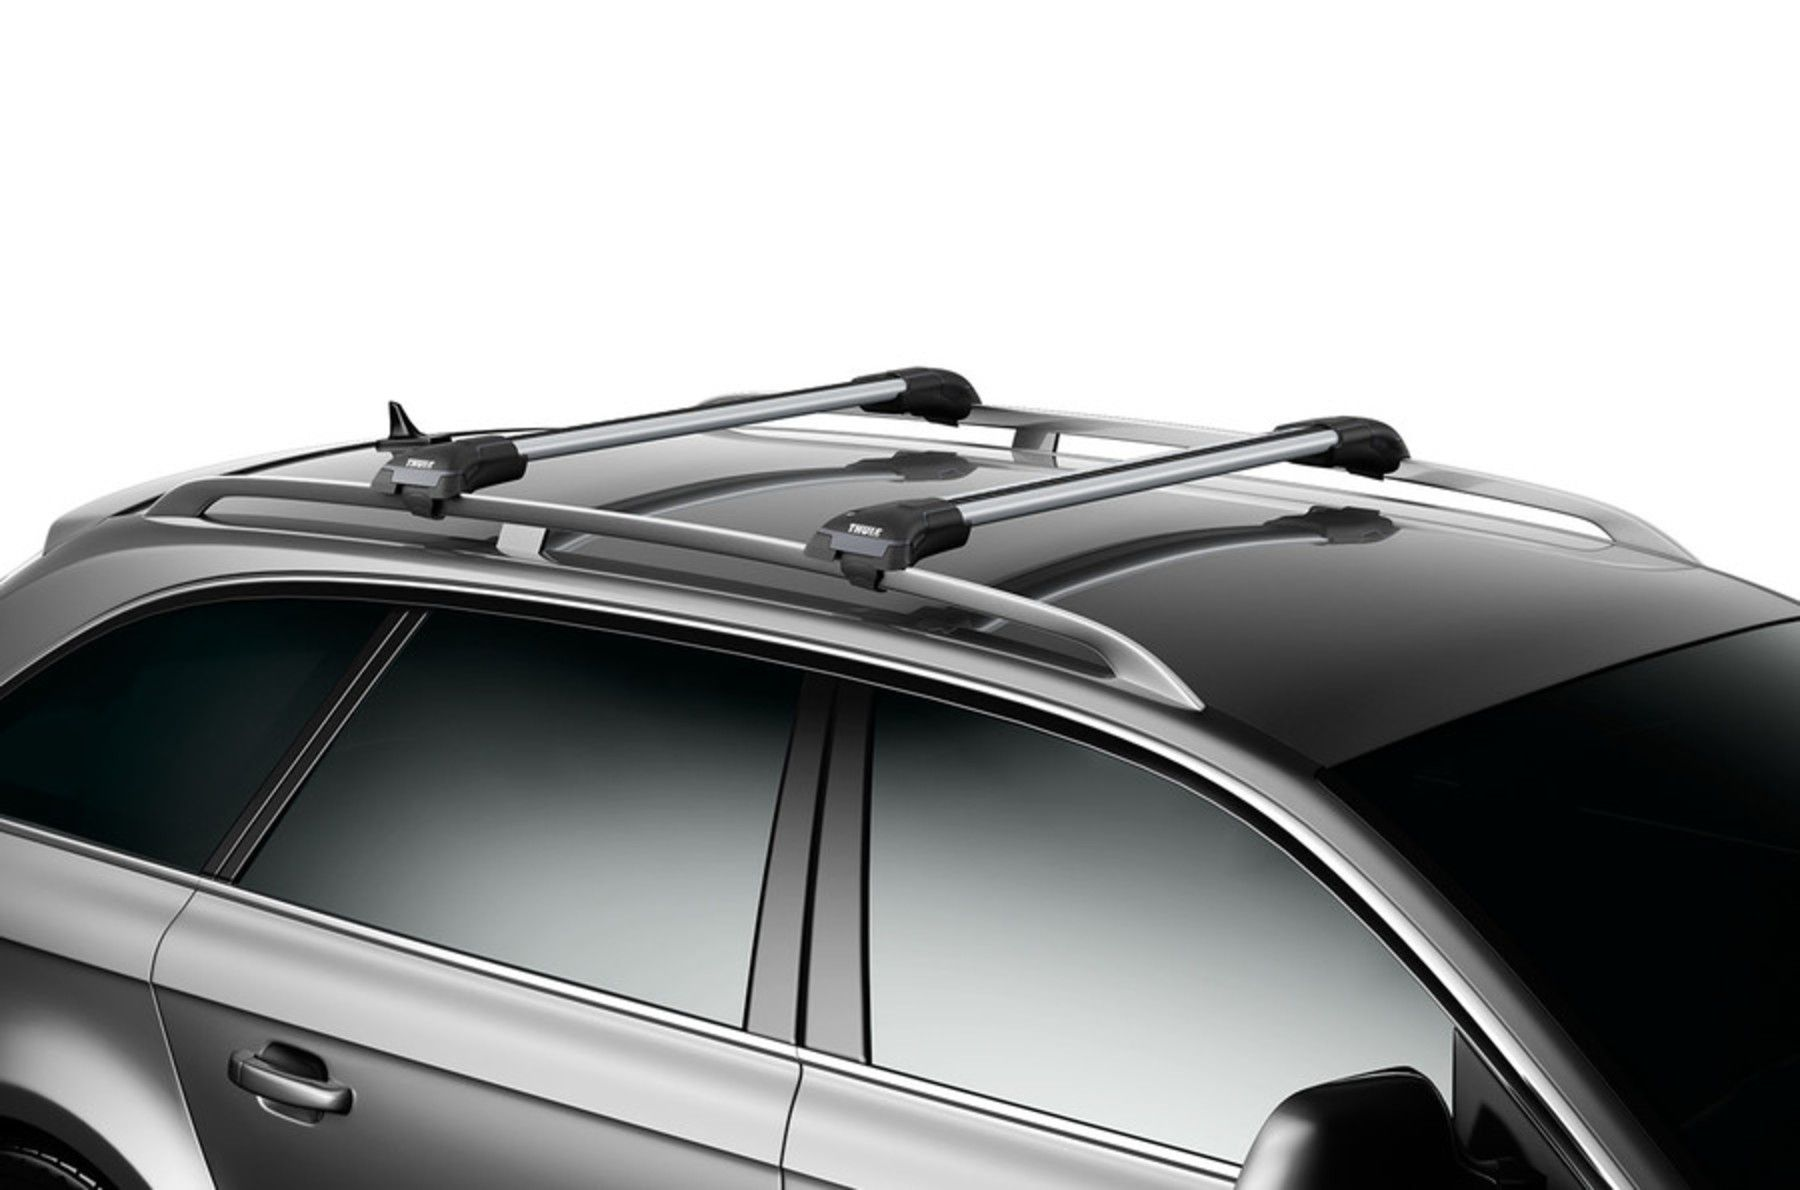 Thule Roof Box Accessories